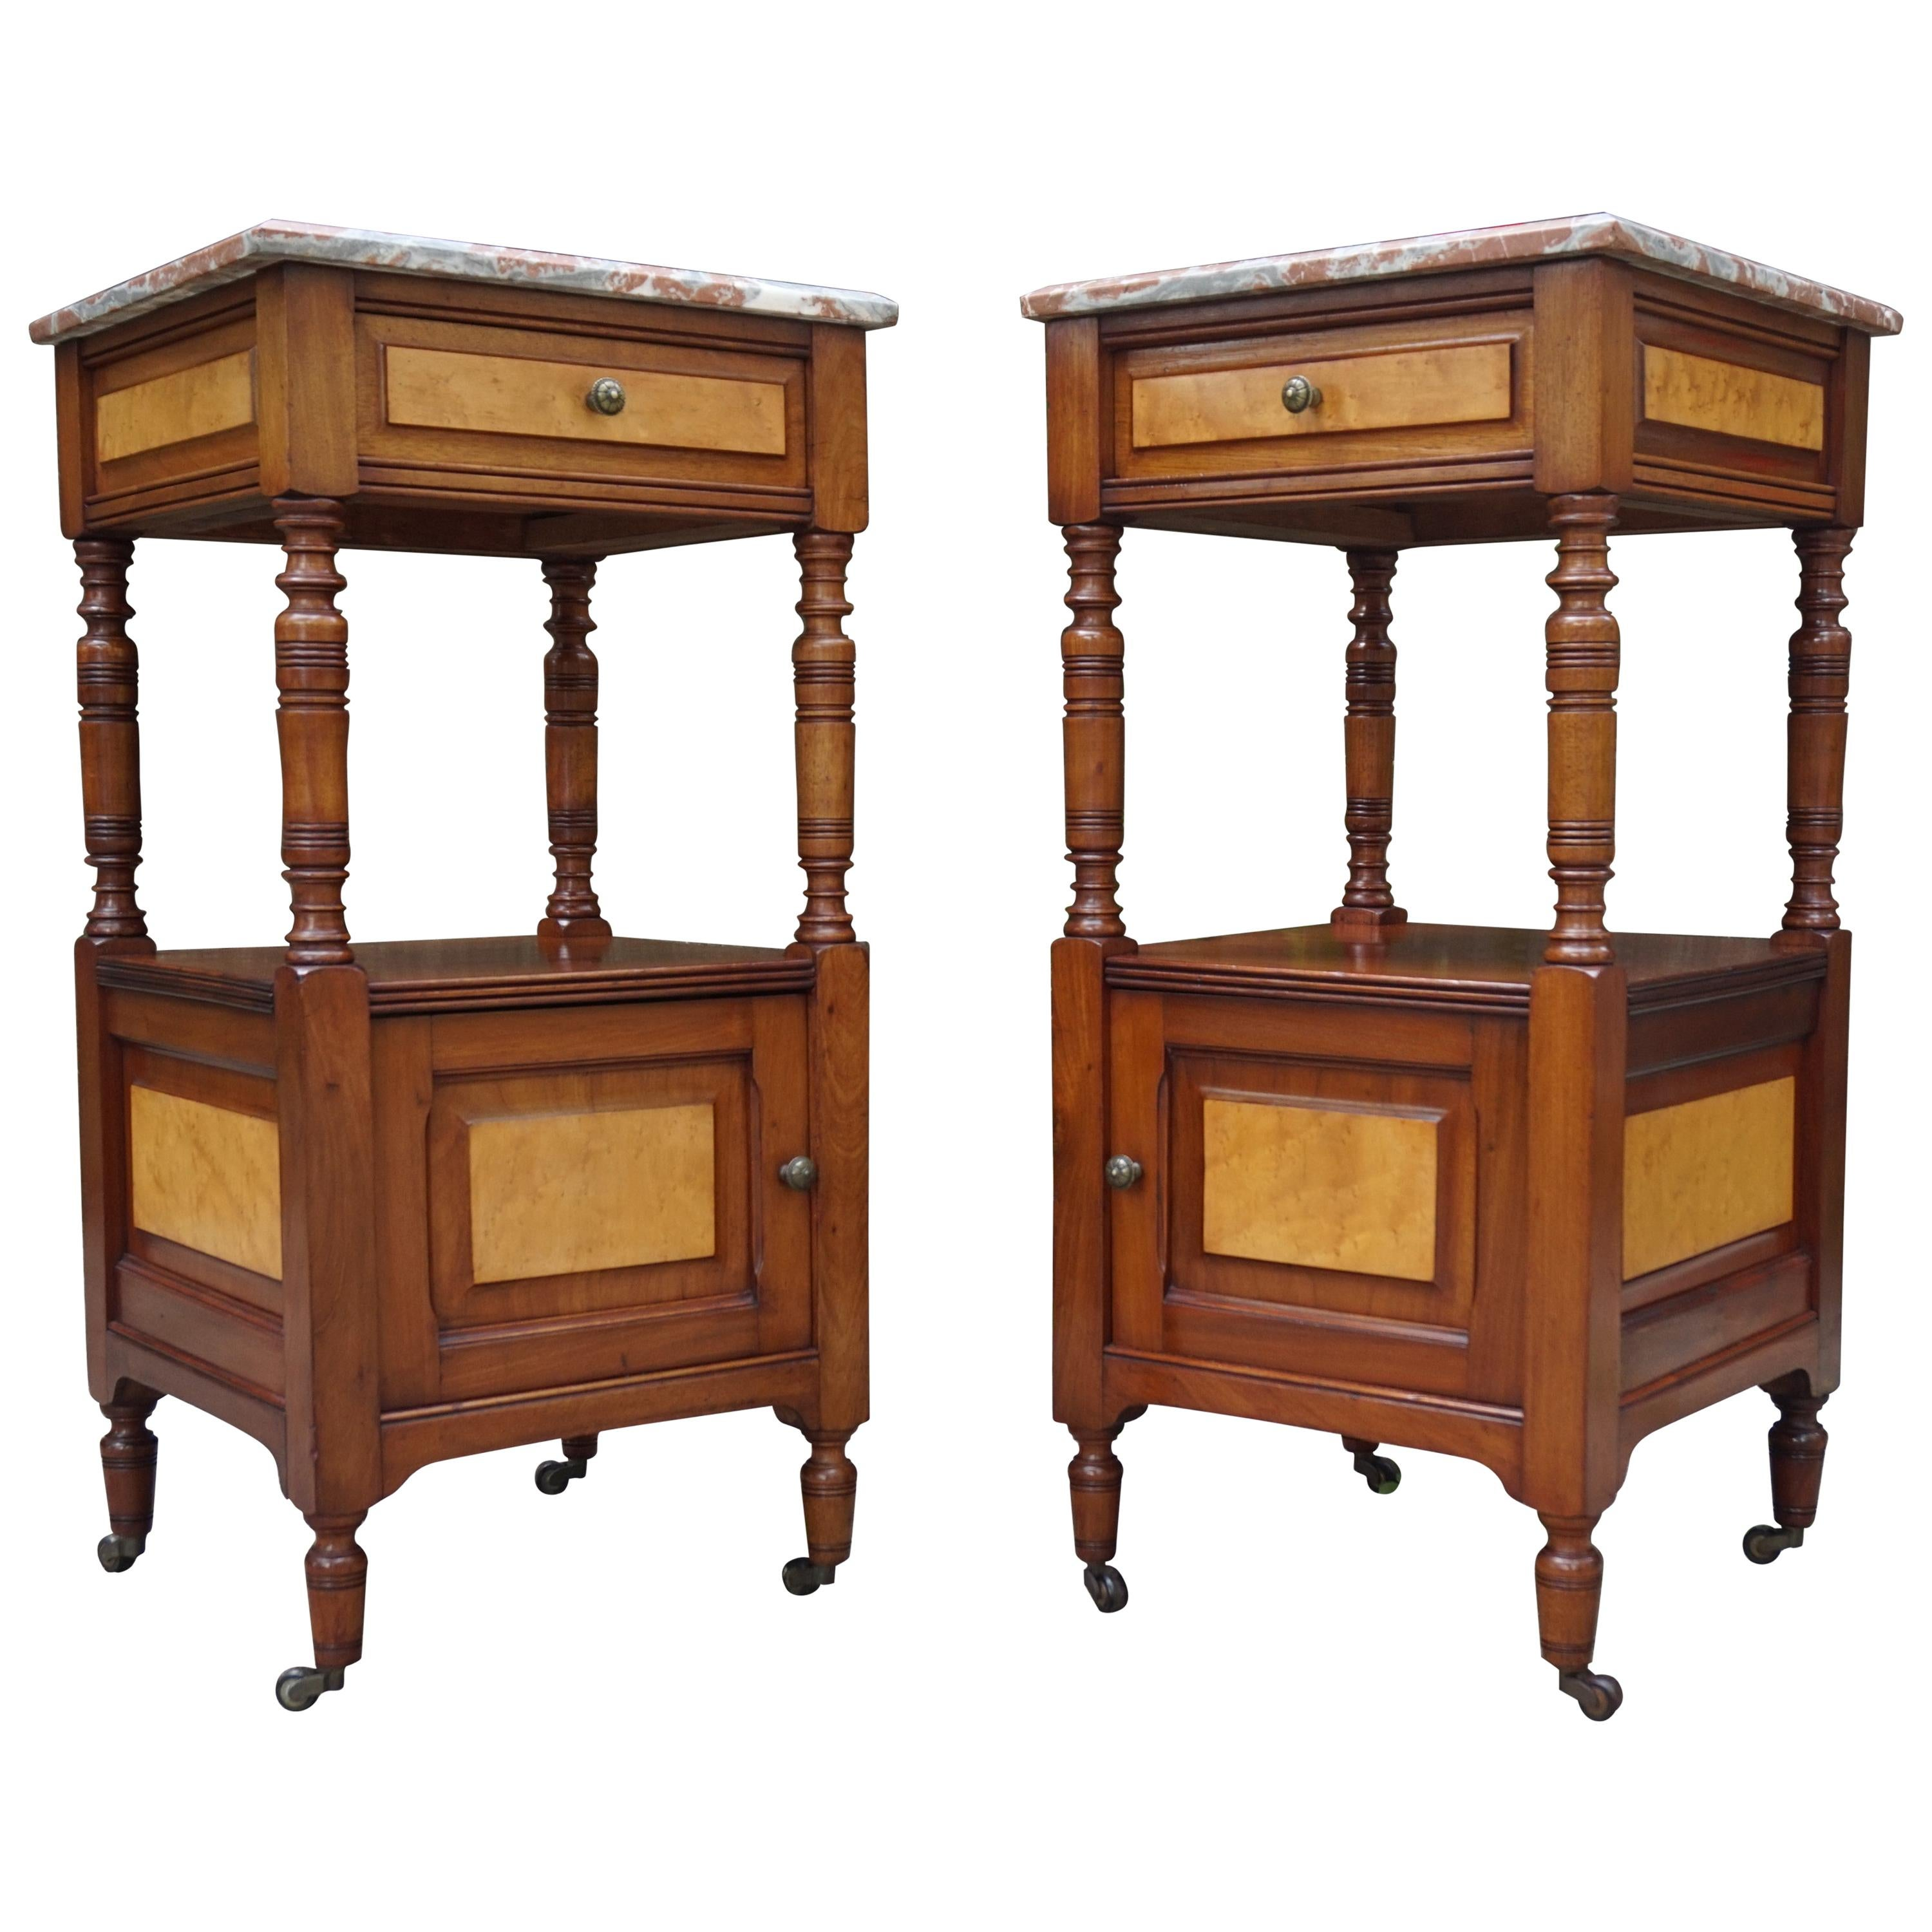 Antique Pair of Mahogany Nightstands with Bird's-Eye Maple Inlay and Marble Tops